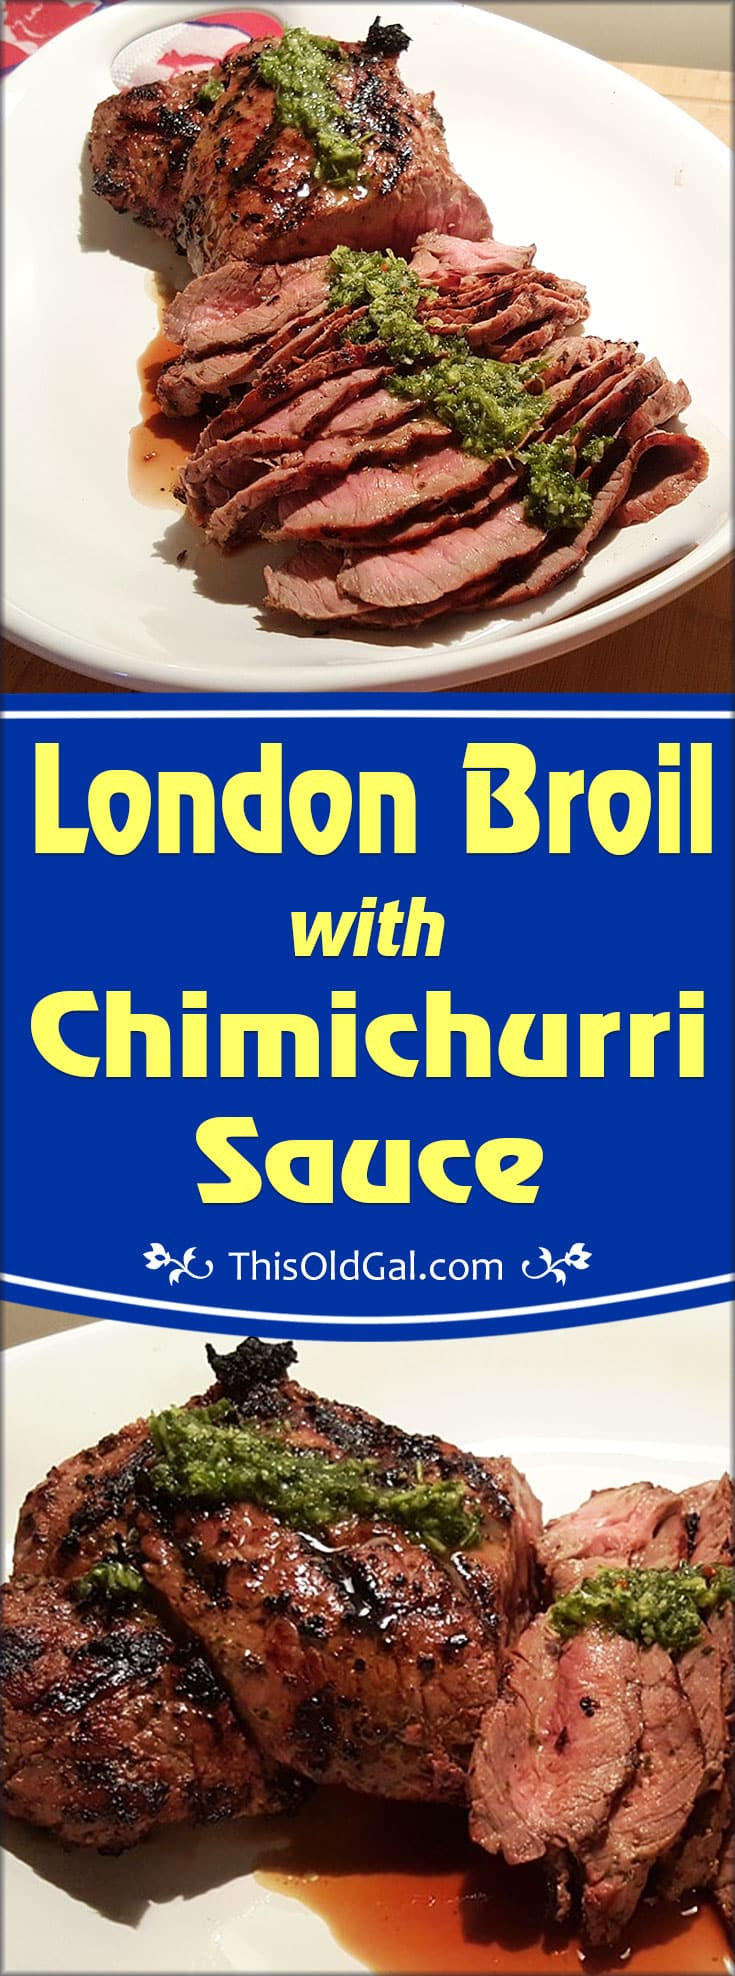 London Broil with Chimichurri Sauce